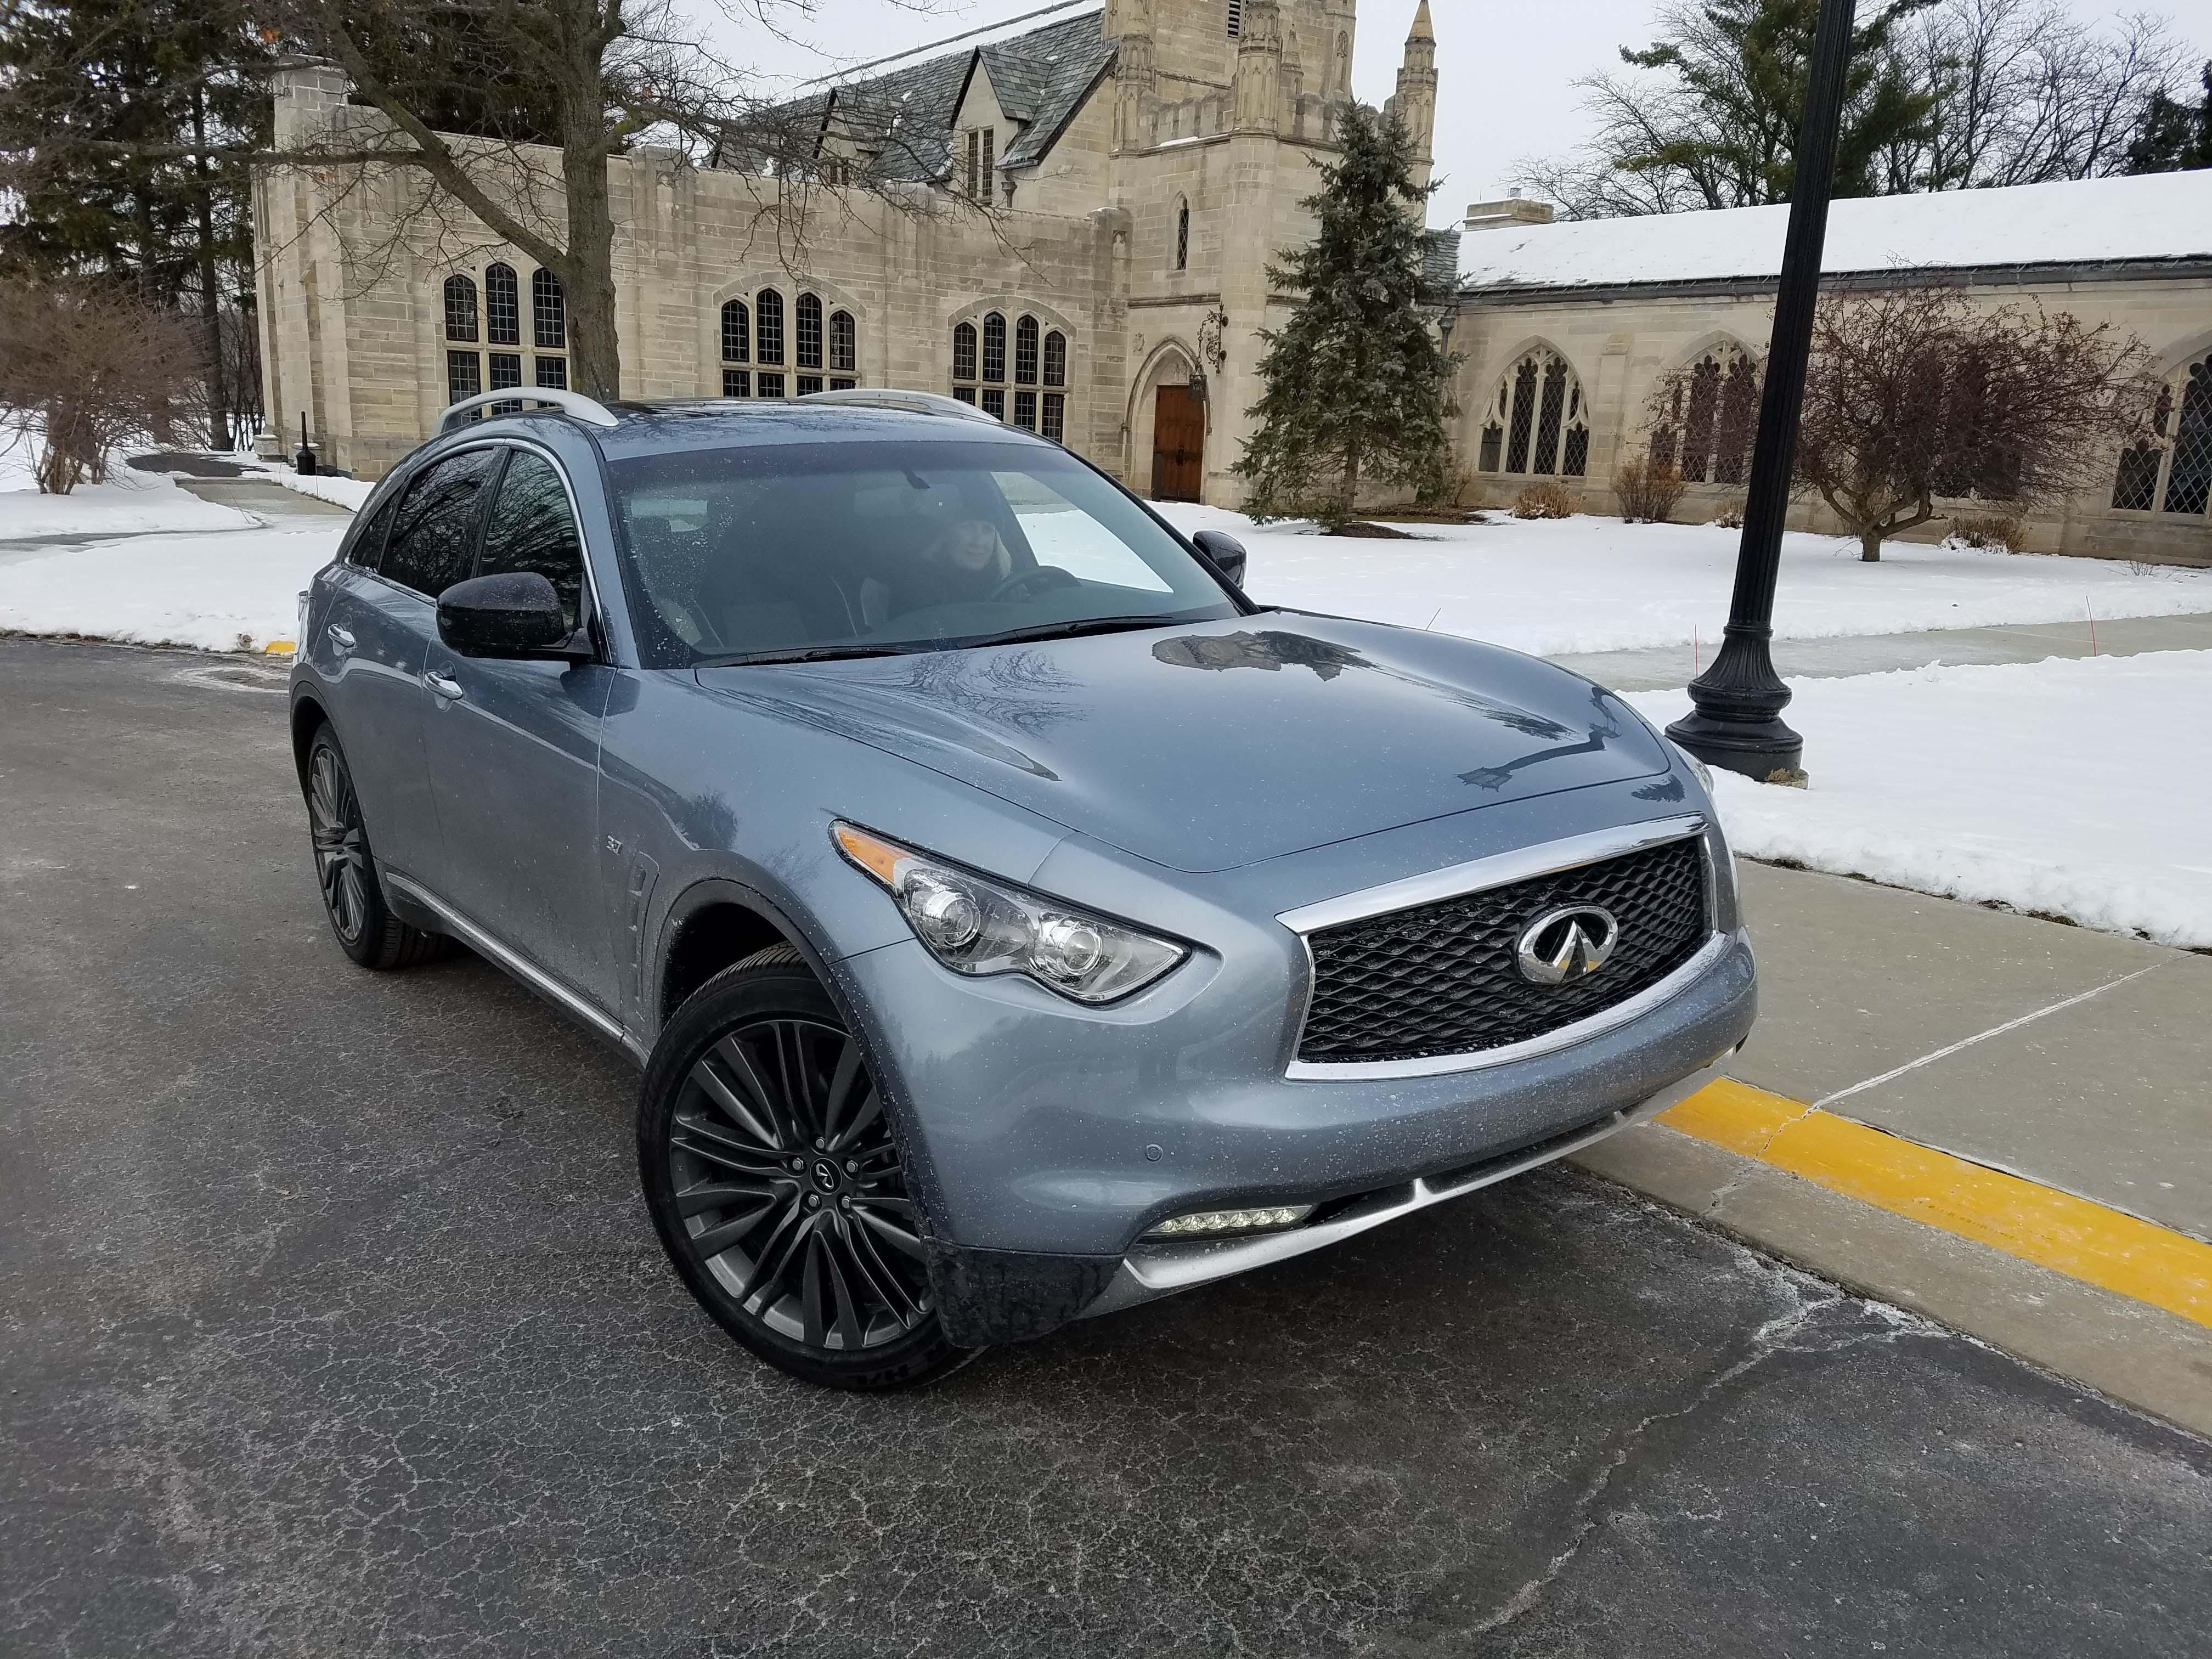 I First Encountered The Infiniti QX70 At A Rental Counter At Christmas In  St. Louis. Normally $125, It Was The Daily Special At Just $30 A Day U2014 Just  $10 ...